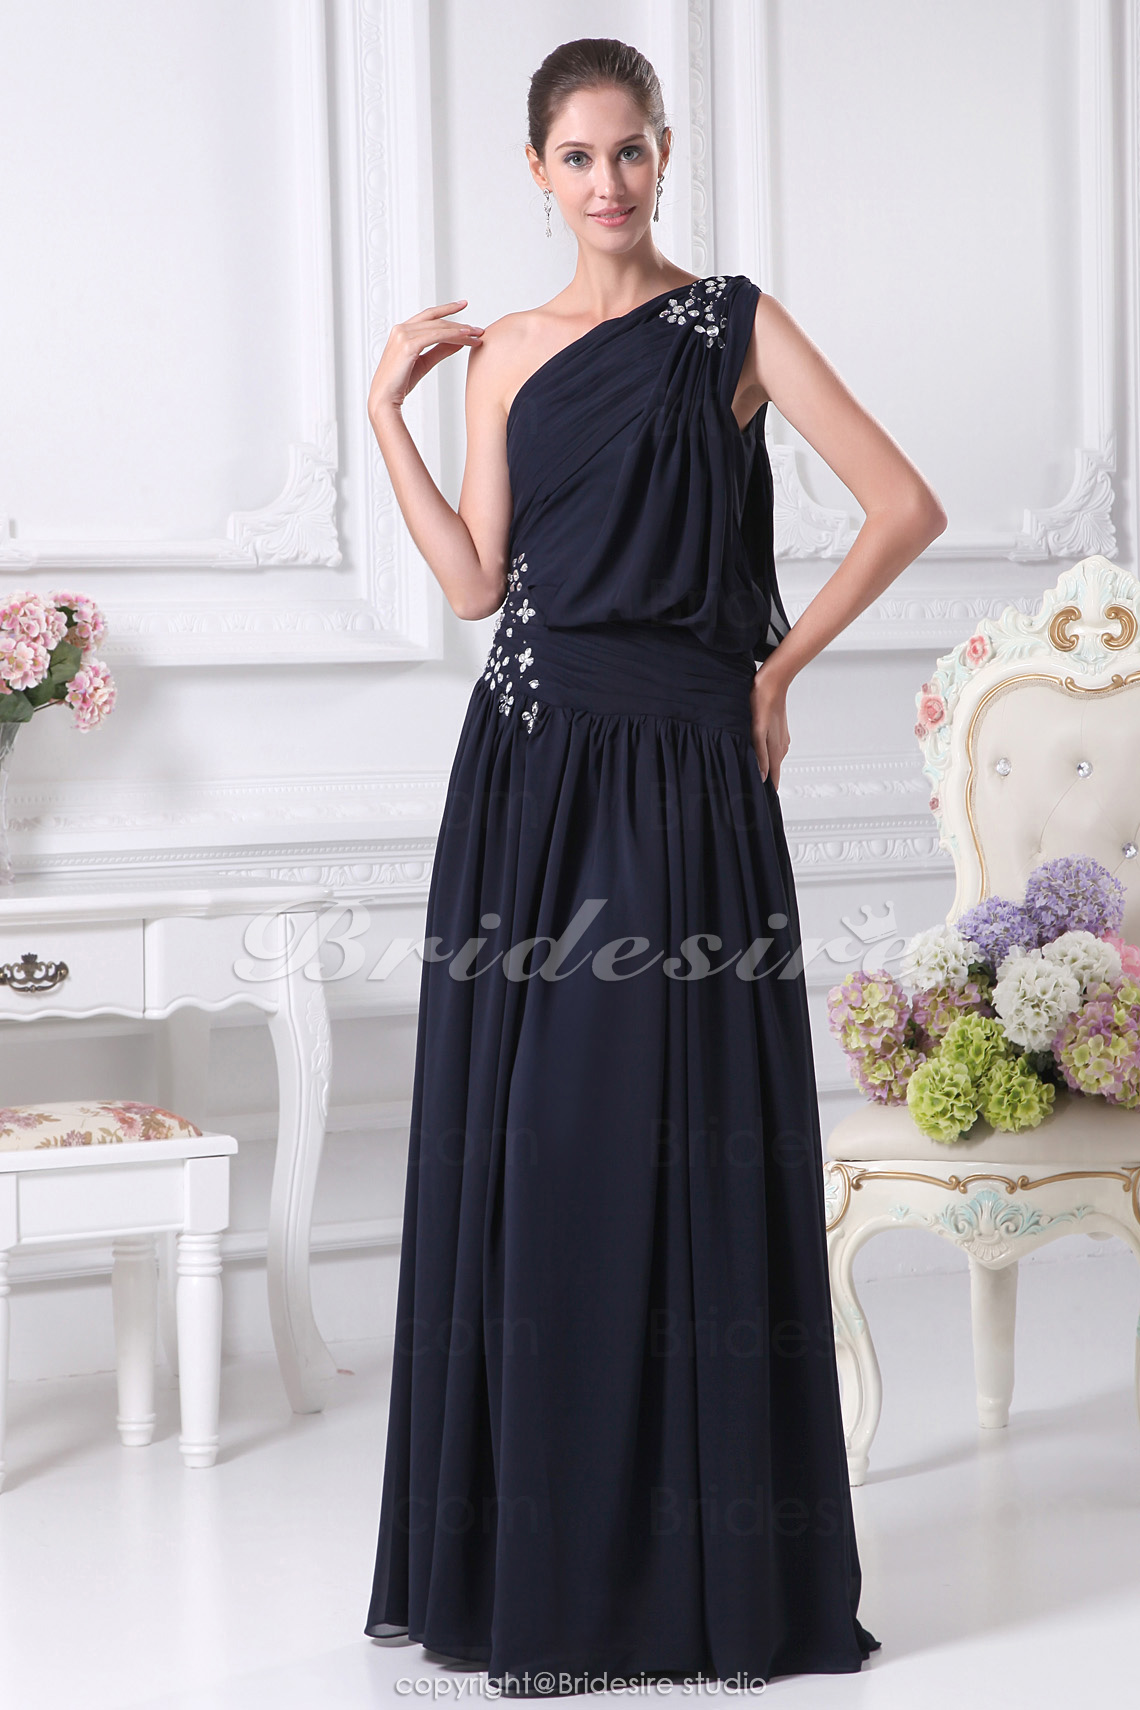 Sheath/Column One Shoulder Floor-length Sleeveless Chiffon Mother of the Bride Dress